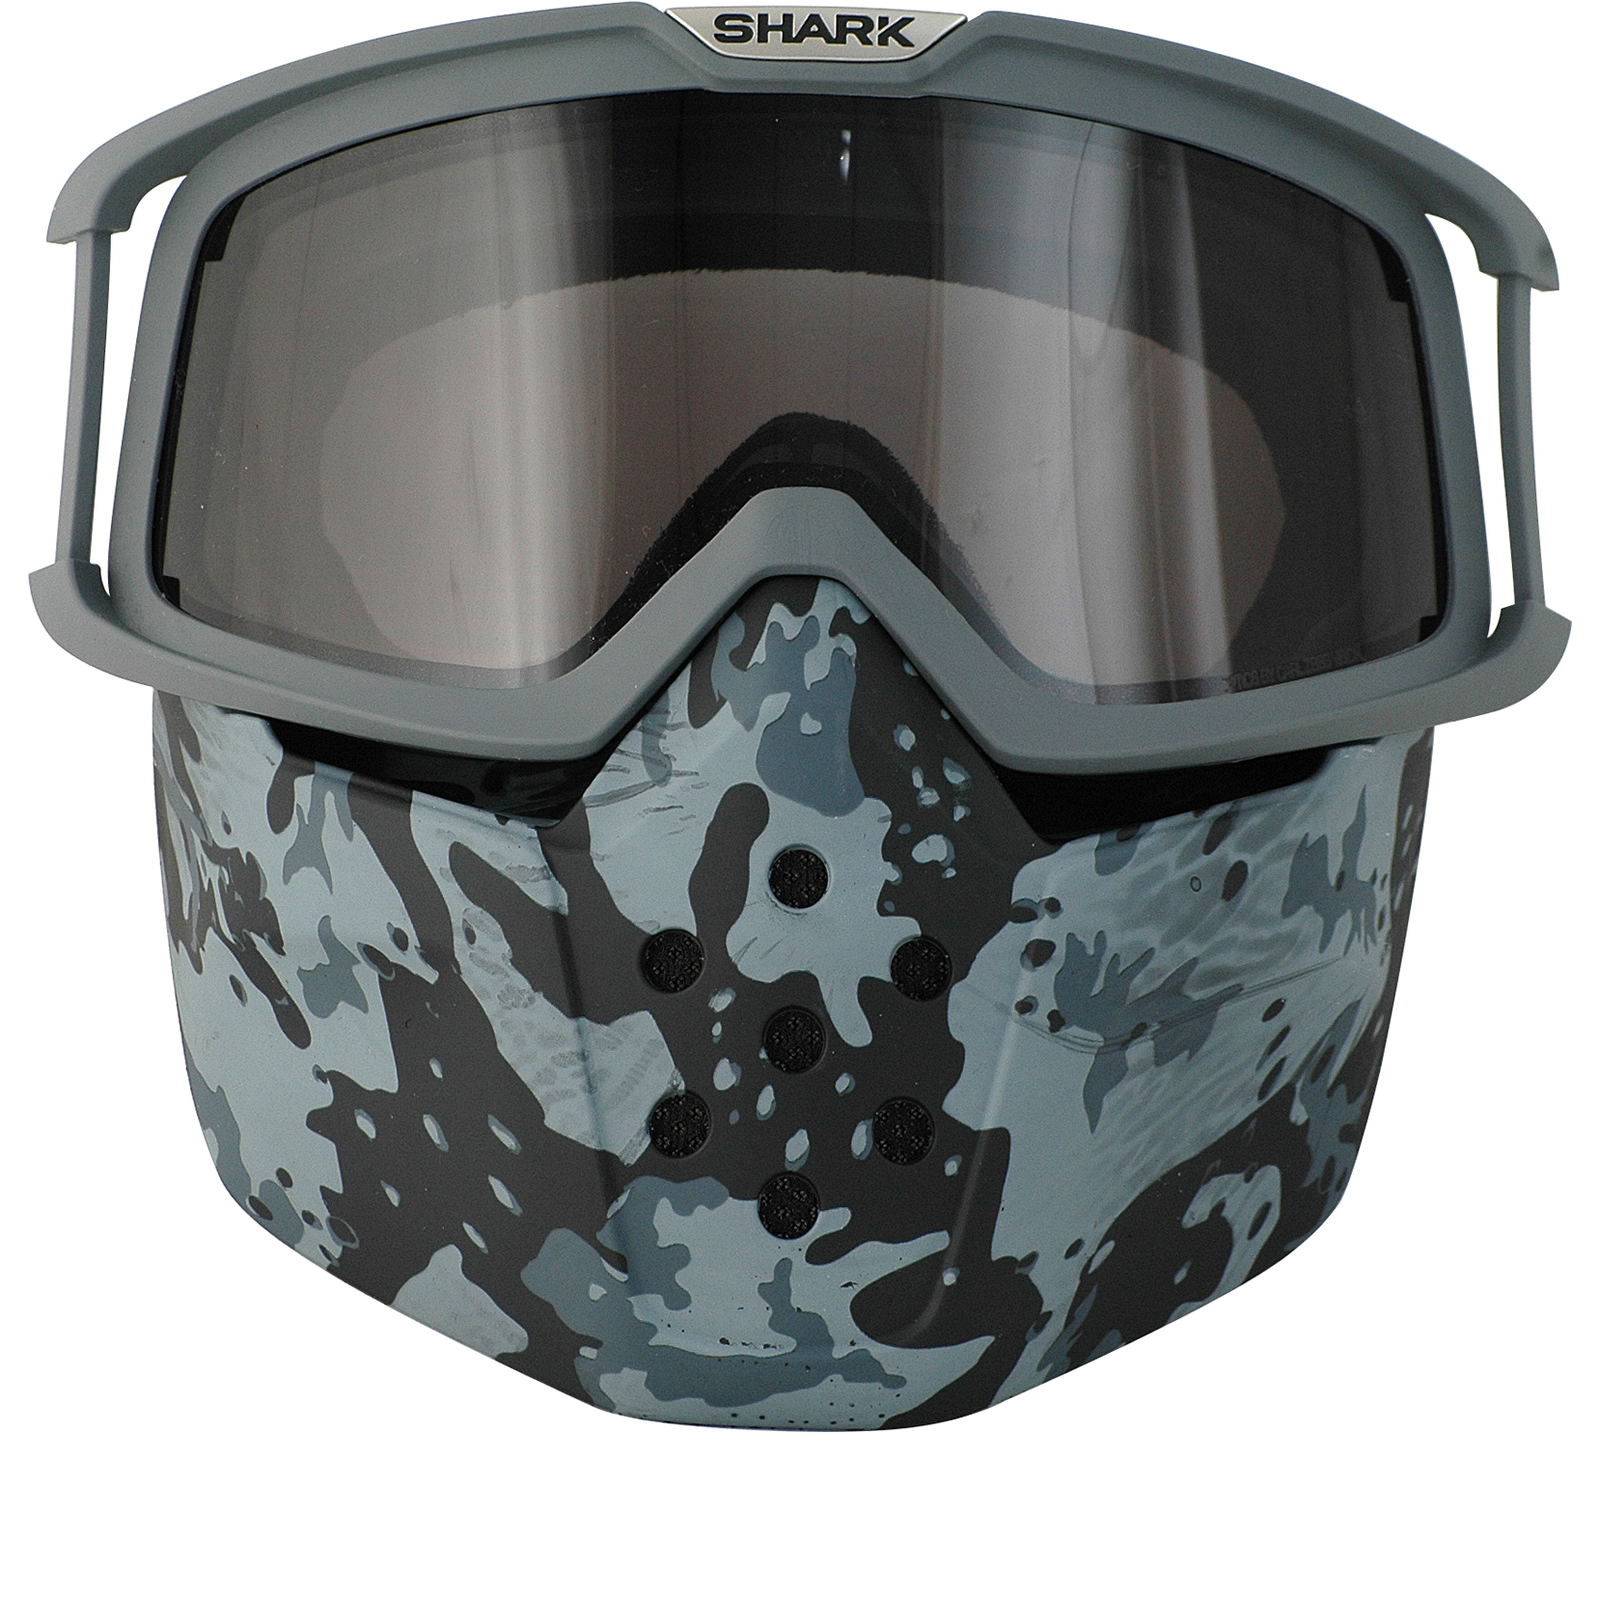 cecbce330d4 Shark Drak and Raw Camo Goggle and Mask Kit - Visors - Ghostbikes.com